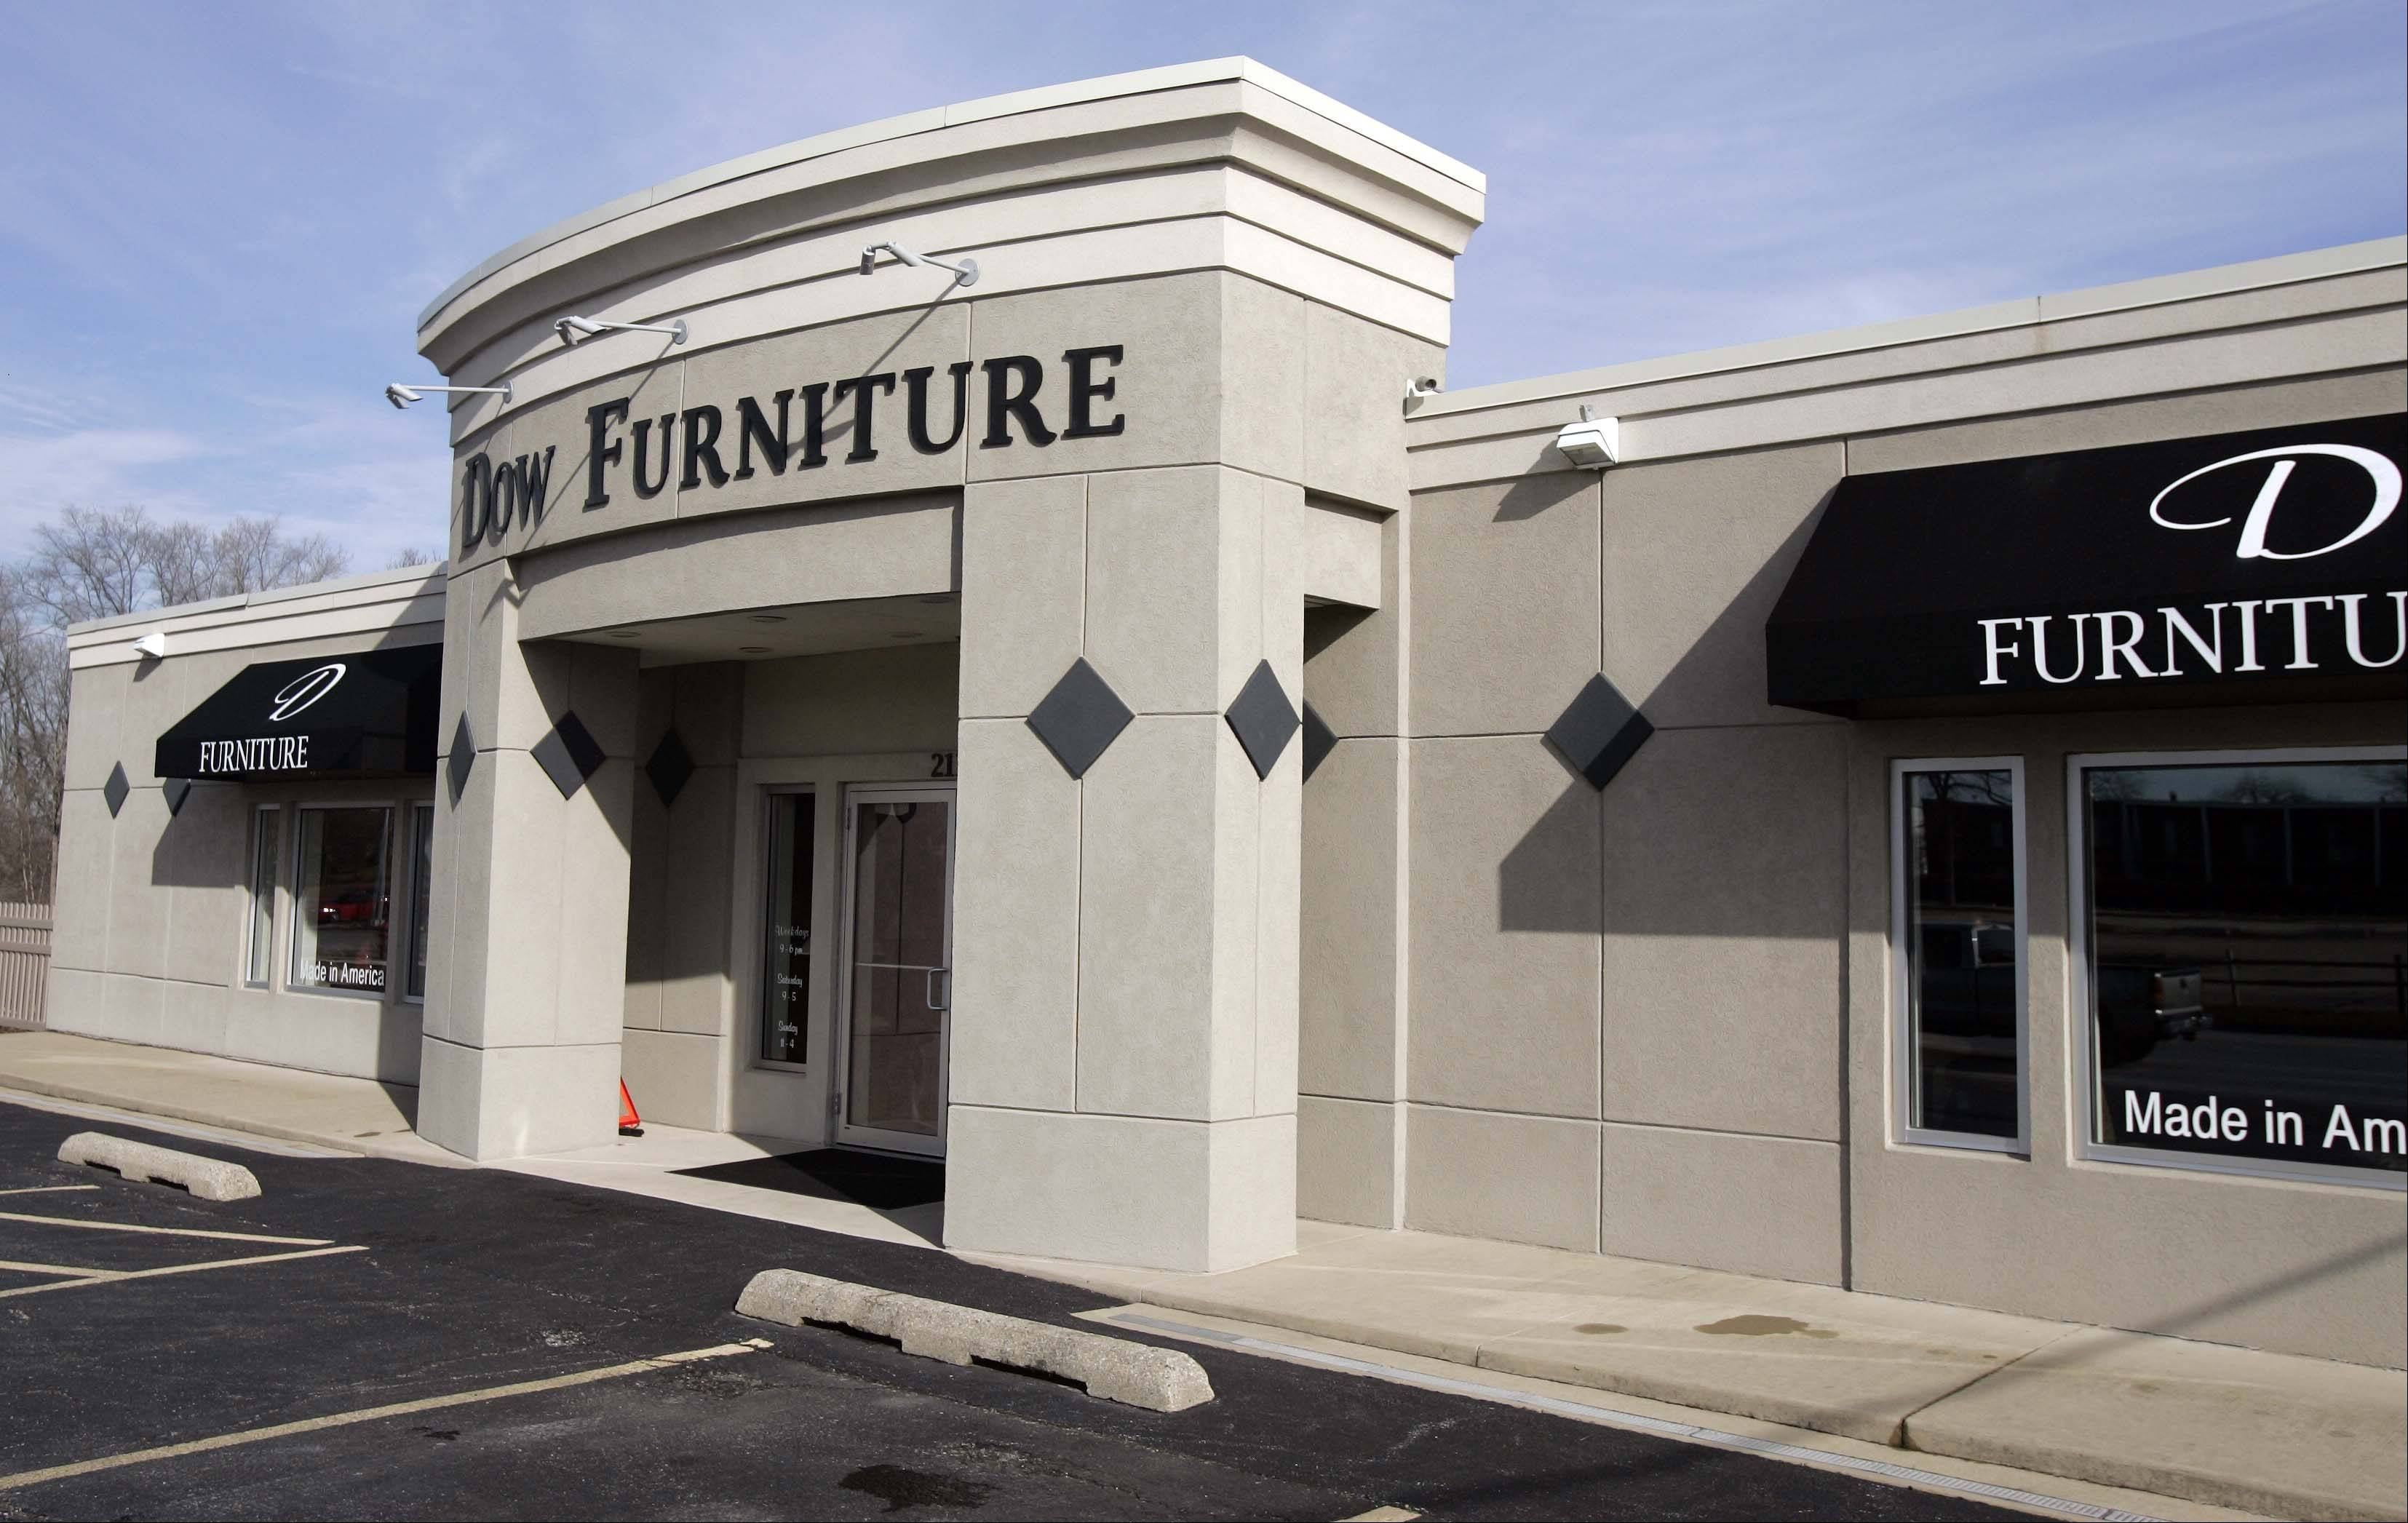 Dow Furniture's roots in the Aurora area date back to the 1920s.